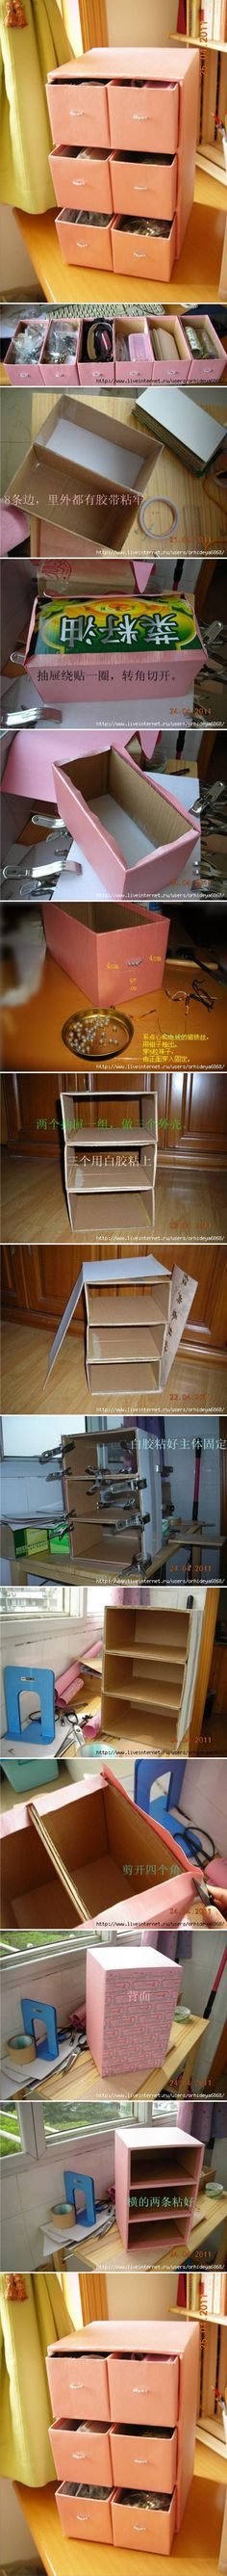 DIY Small Cardboard Chest